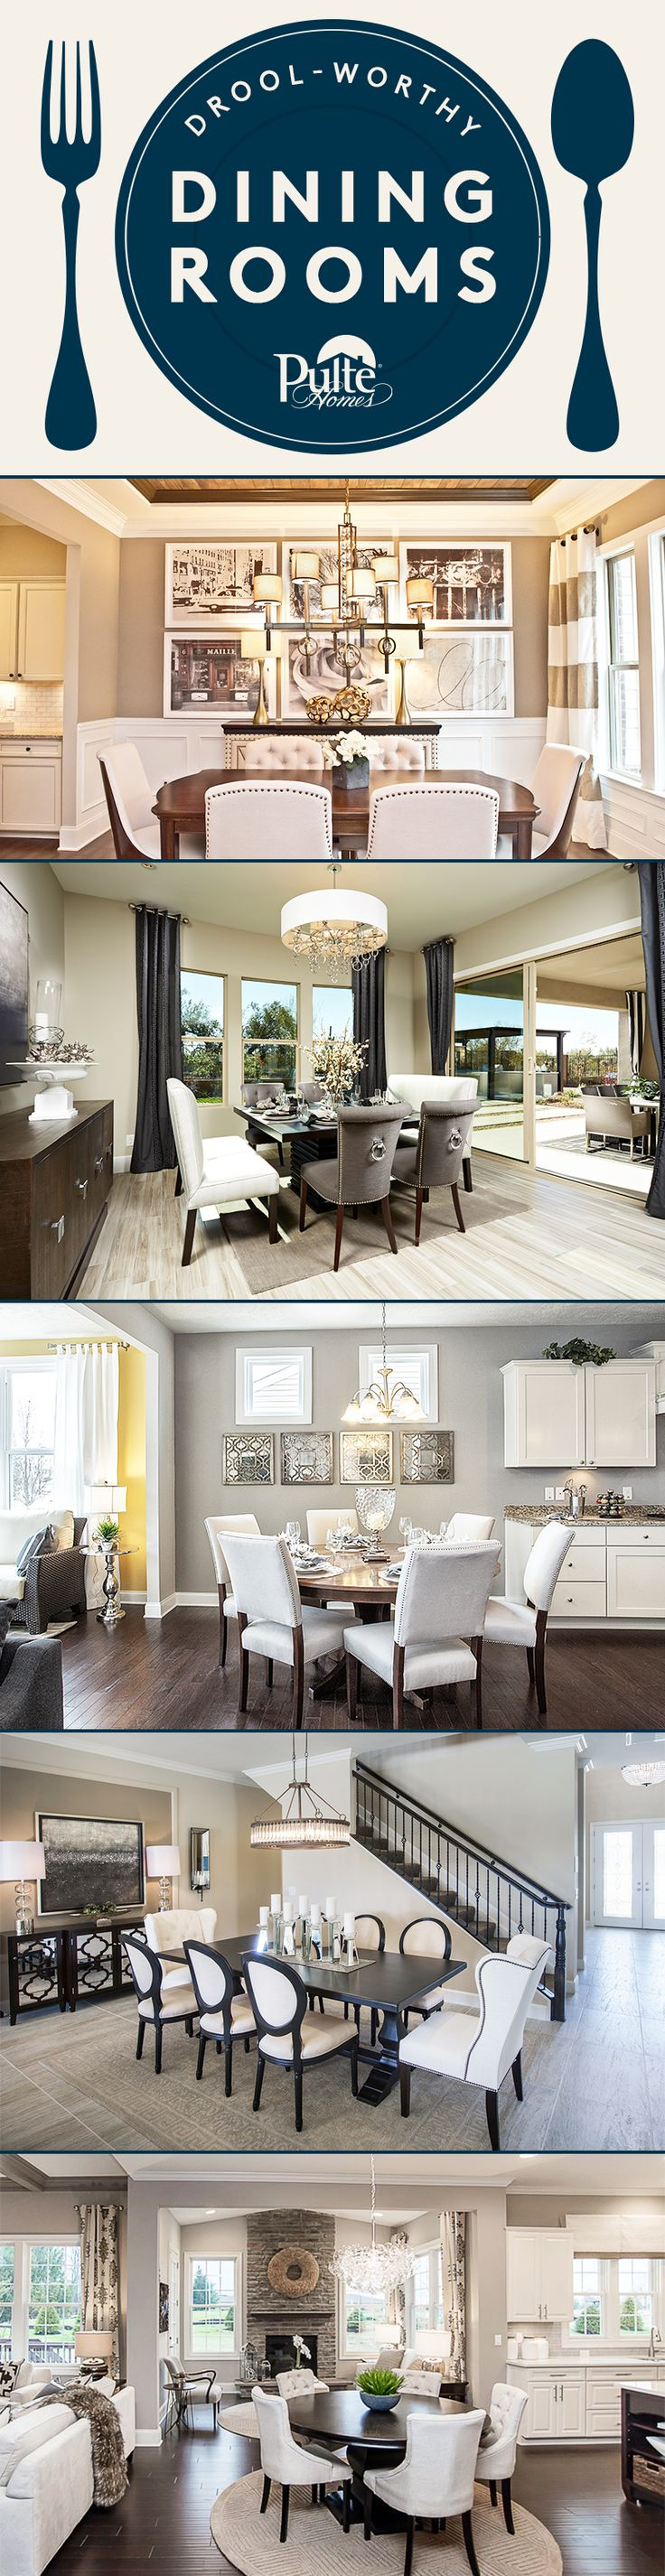 Give Your Dining Room The Five Star Treatment With These Delicious Design And Decor Inspirations Pulte Homes1st Apartmentinterior